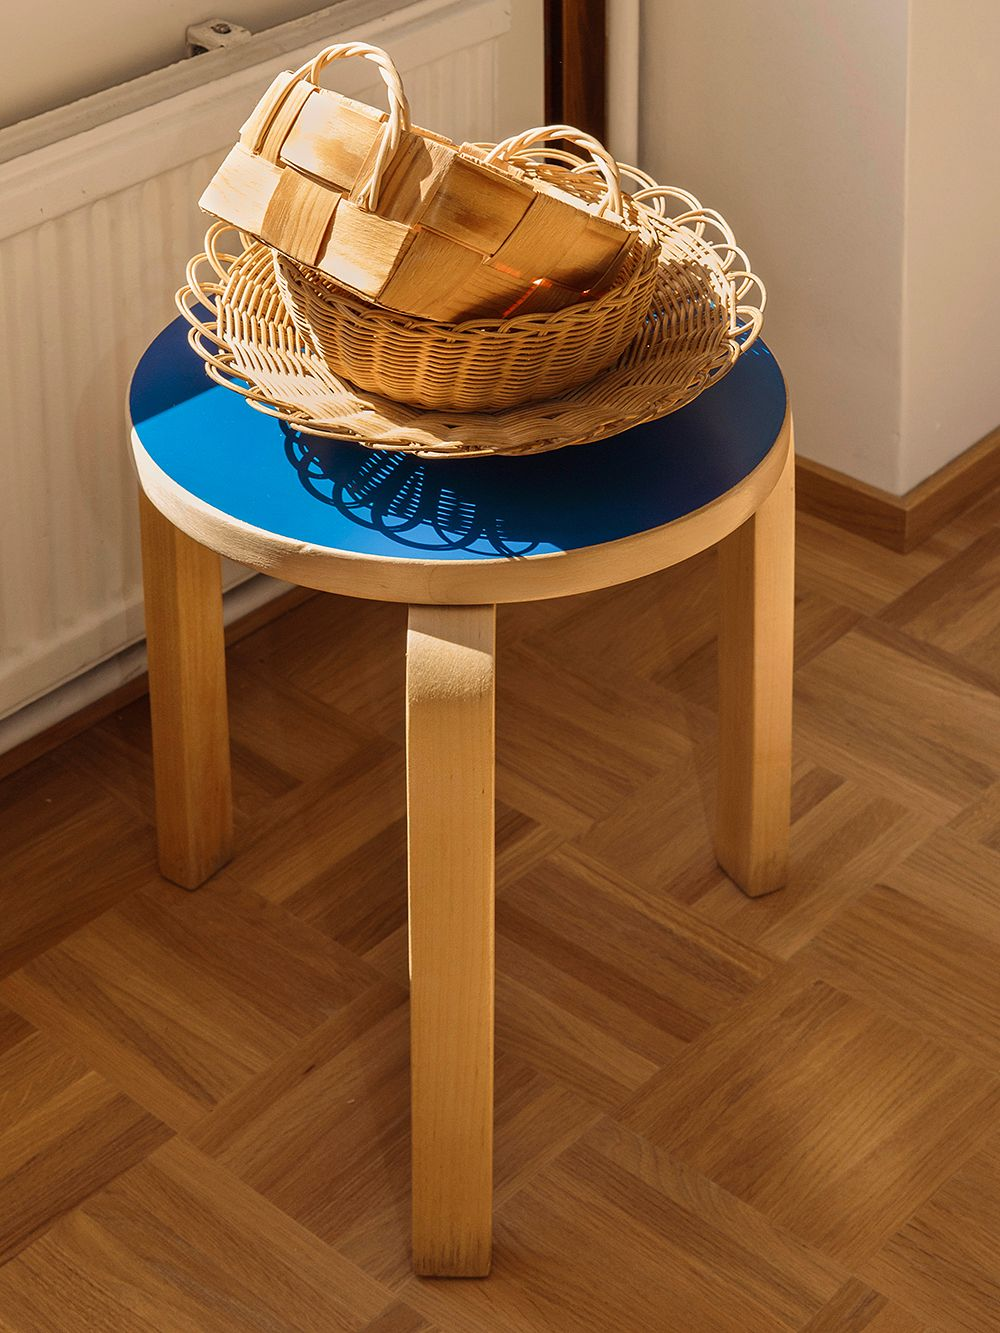 Artek Stool 60 with a blue seating